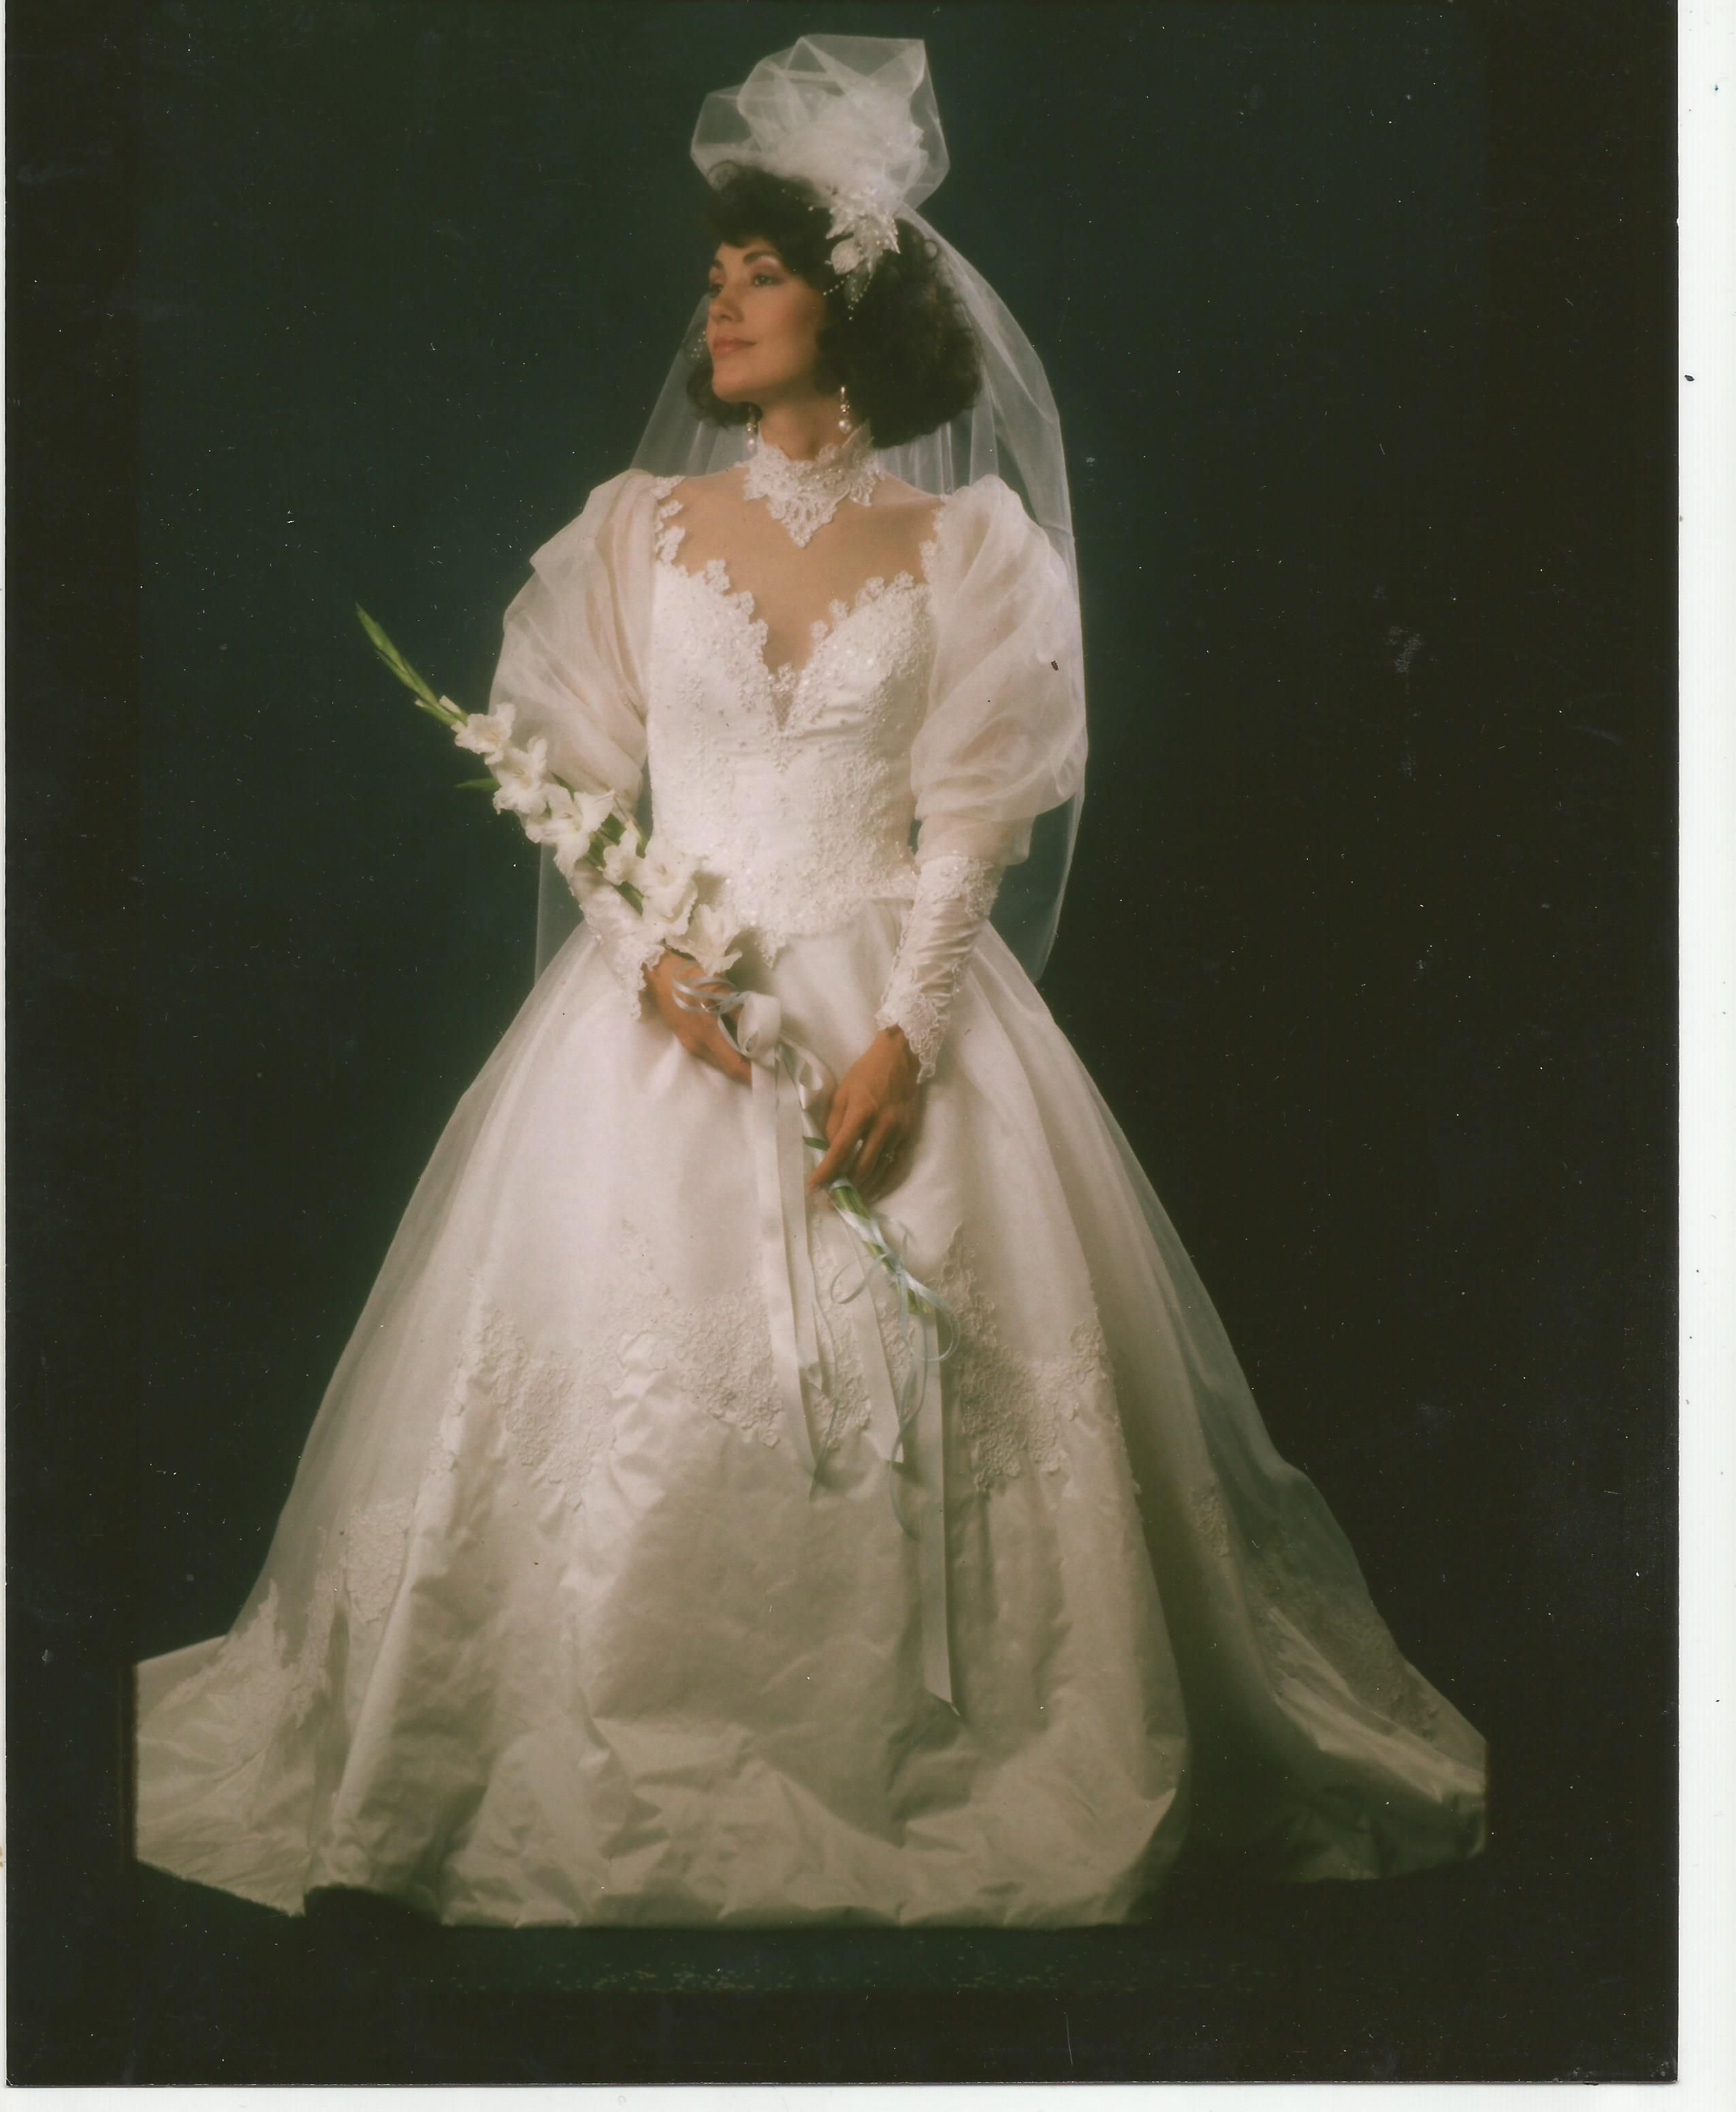 Tbt Throwback Wedding Dress I Made From The Late 80 S Early 90 S Wedding Dresses Vintage Dramatic Wedding Dress 90s Wedding Dress